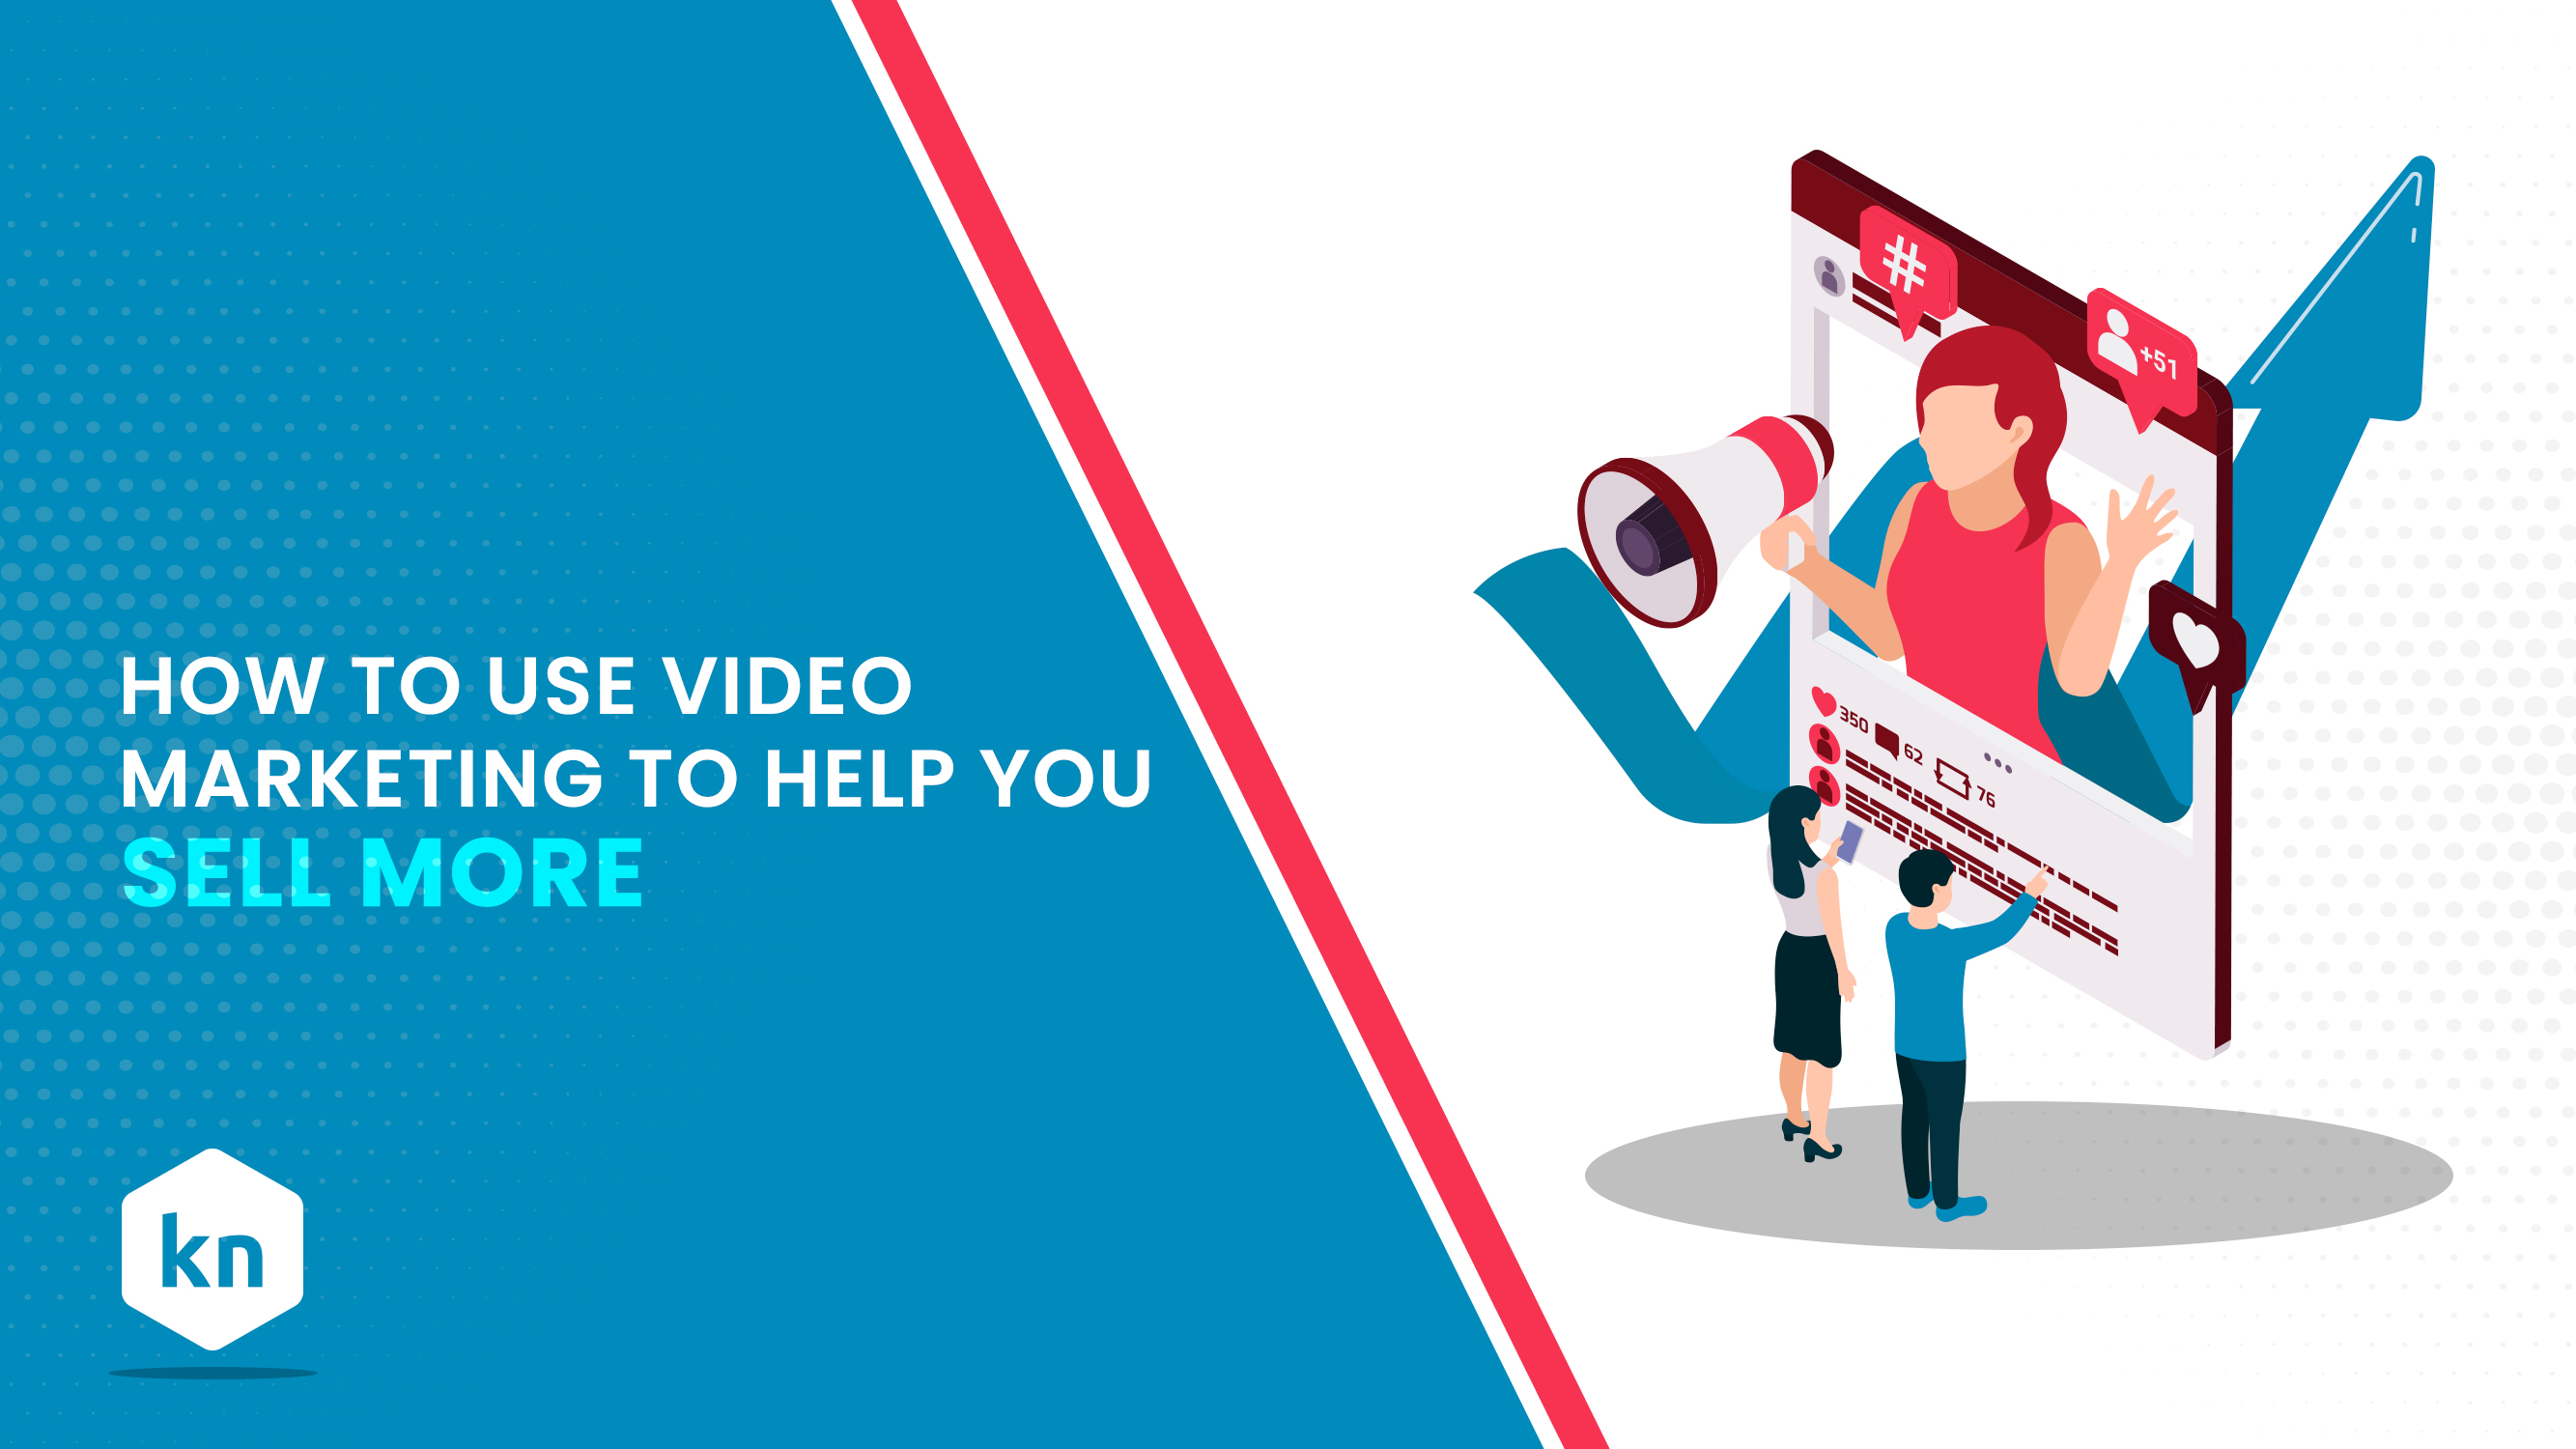 How To Use Video Marketing To Help You Sell More